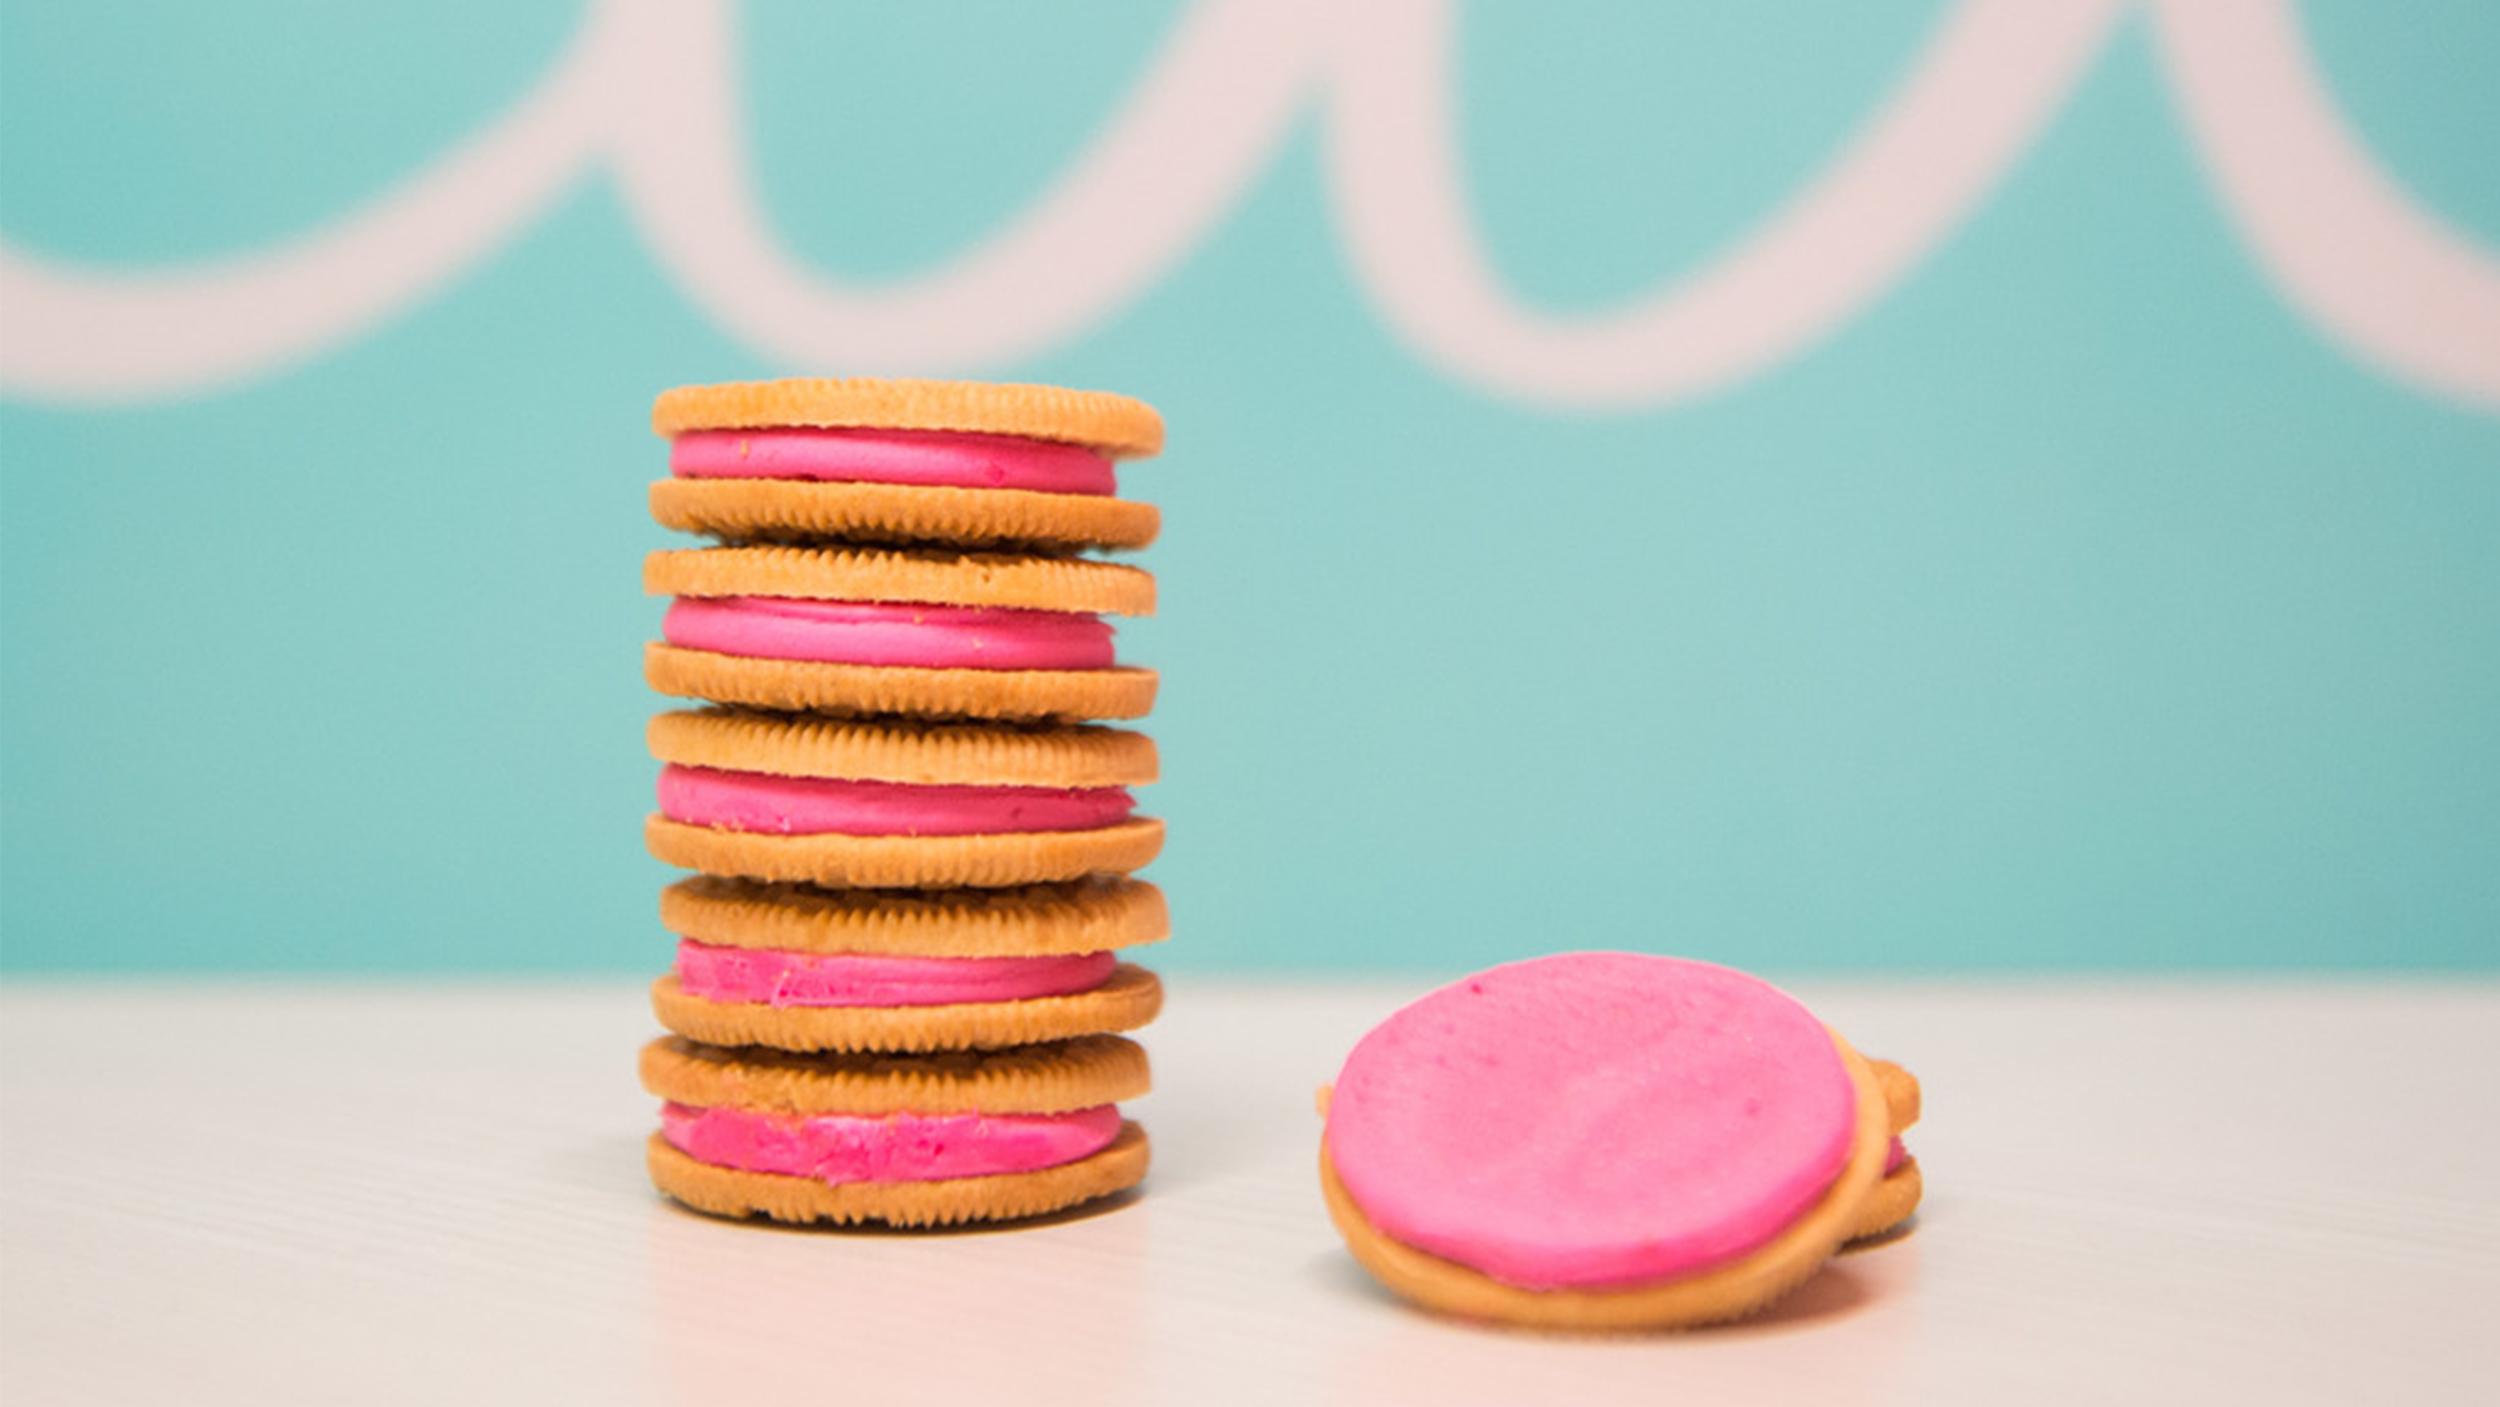 peeps oreos we tried the new limited edition flavor